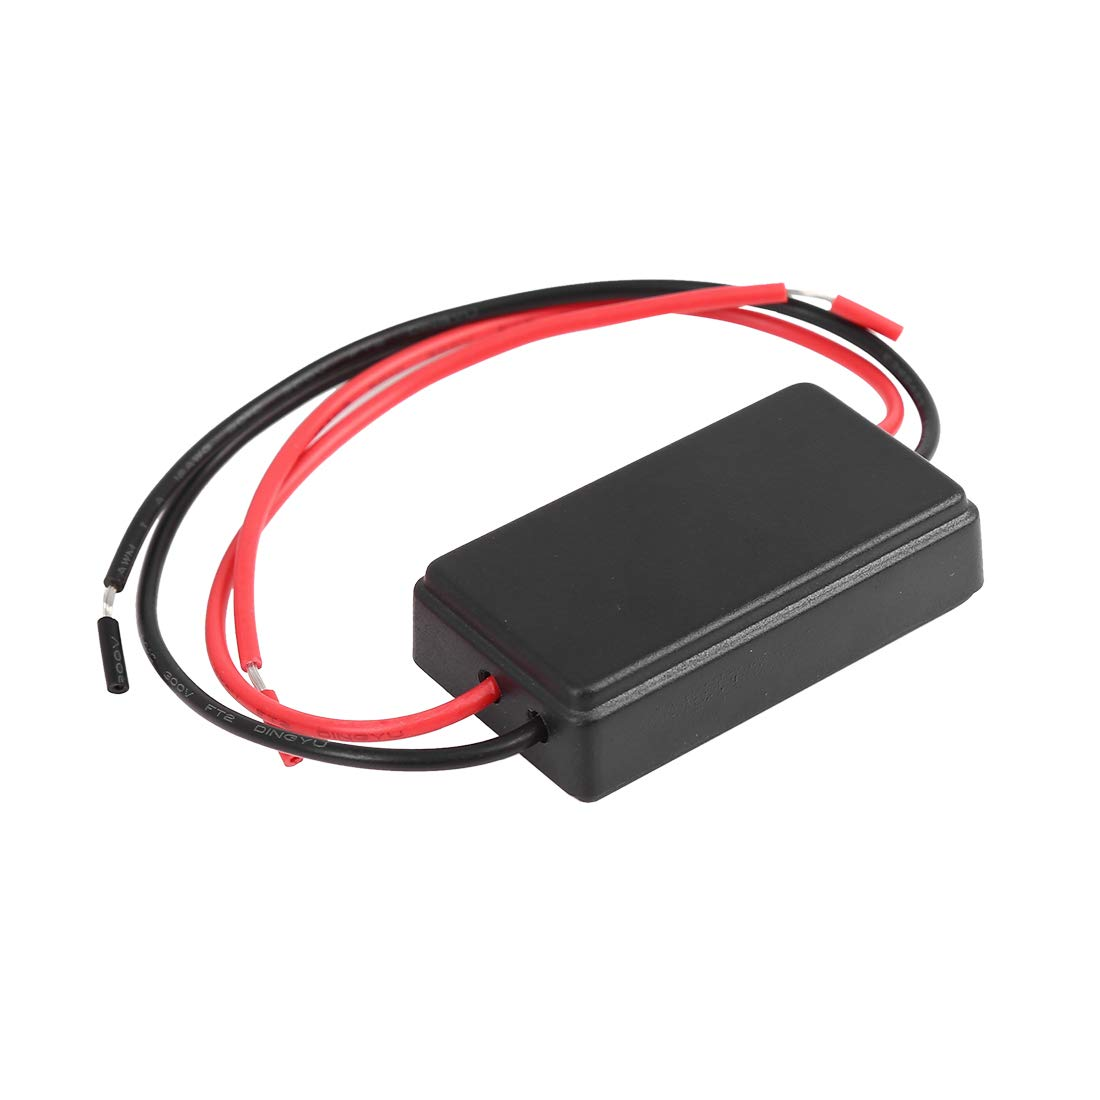 X AUTOHAUX GS-100A LED Stop Light Anti Flicker Flash Module Strobe Controller Universal for Car